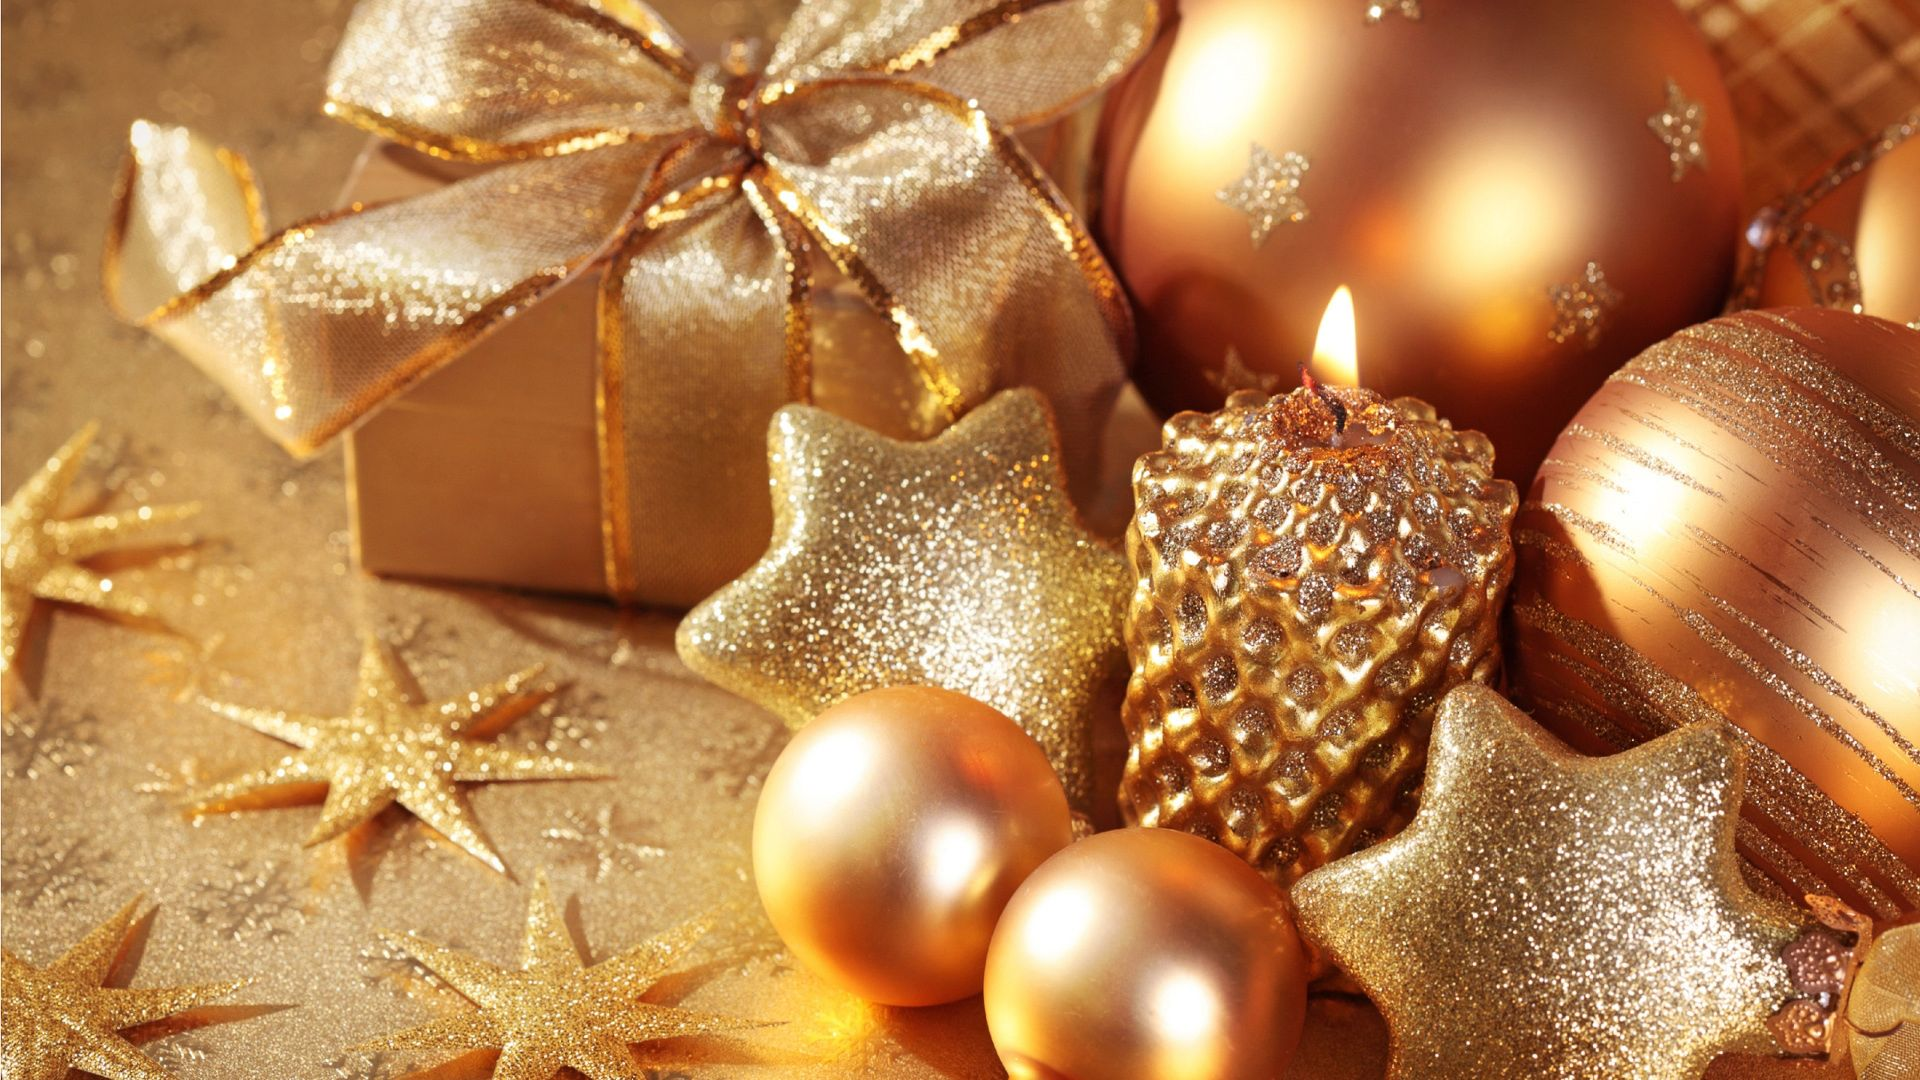 Christmas, New Year, star, candle, gift, balls, gold, decorations (horizontal)